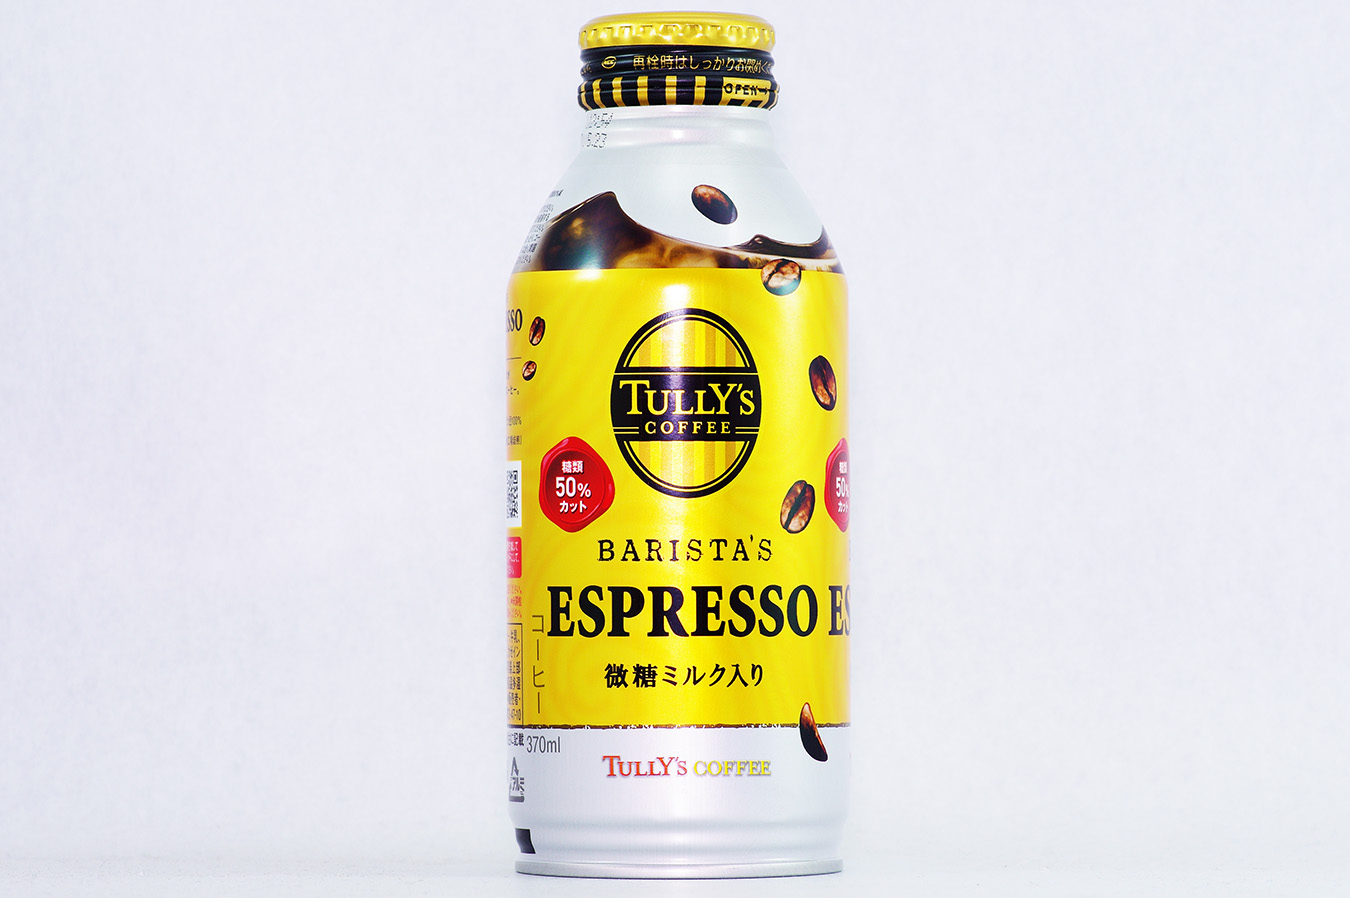 TULLY'S COFFEE BARISTA'S ESPRESSO 2016年10月